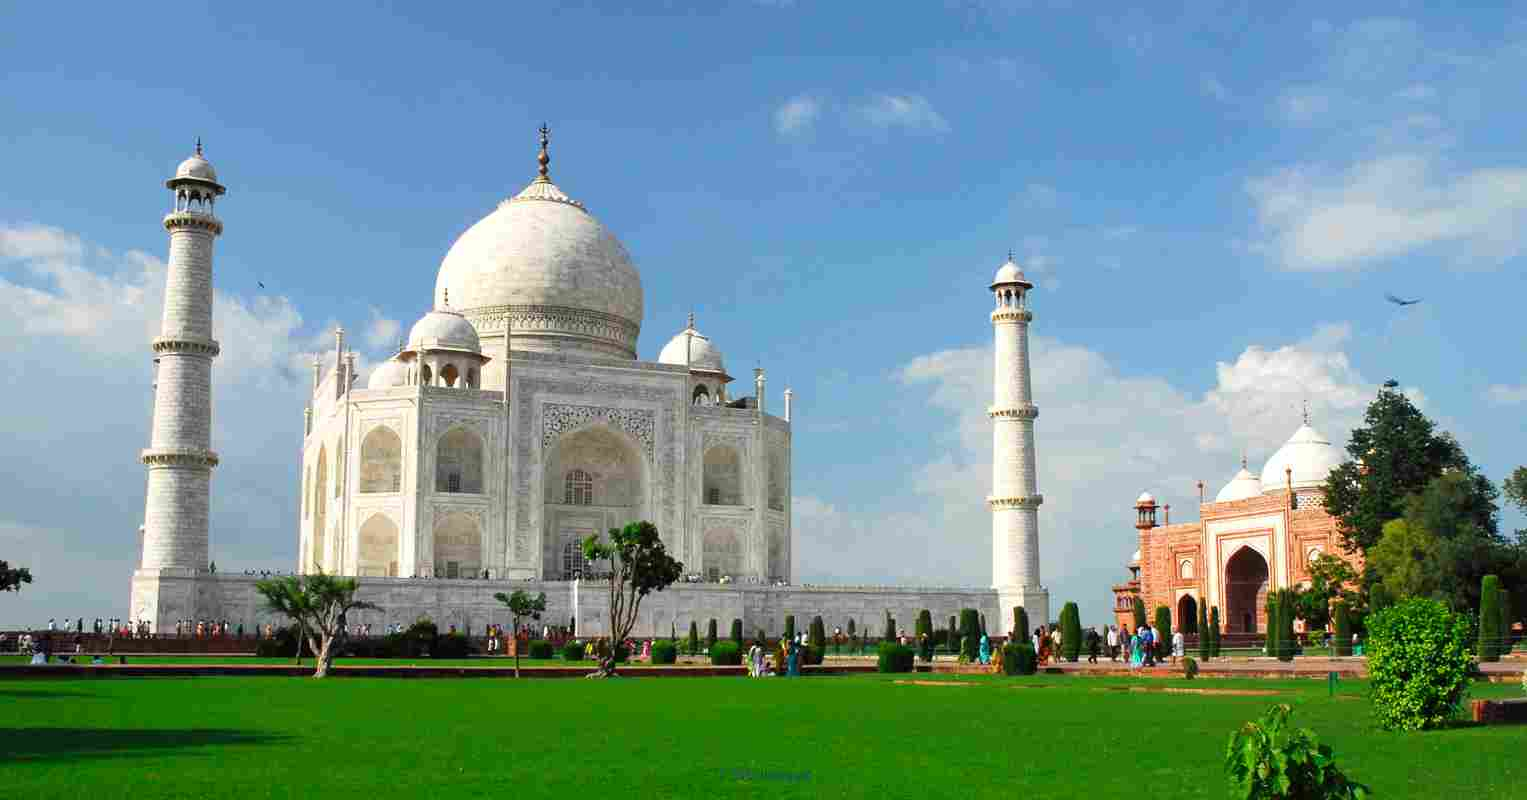 India Tourism Packages Booking Now  Ottawa, Ontario, Canada Annonces Classées